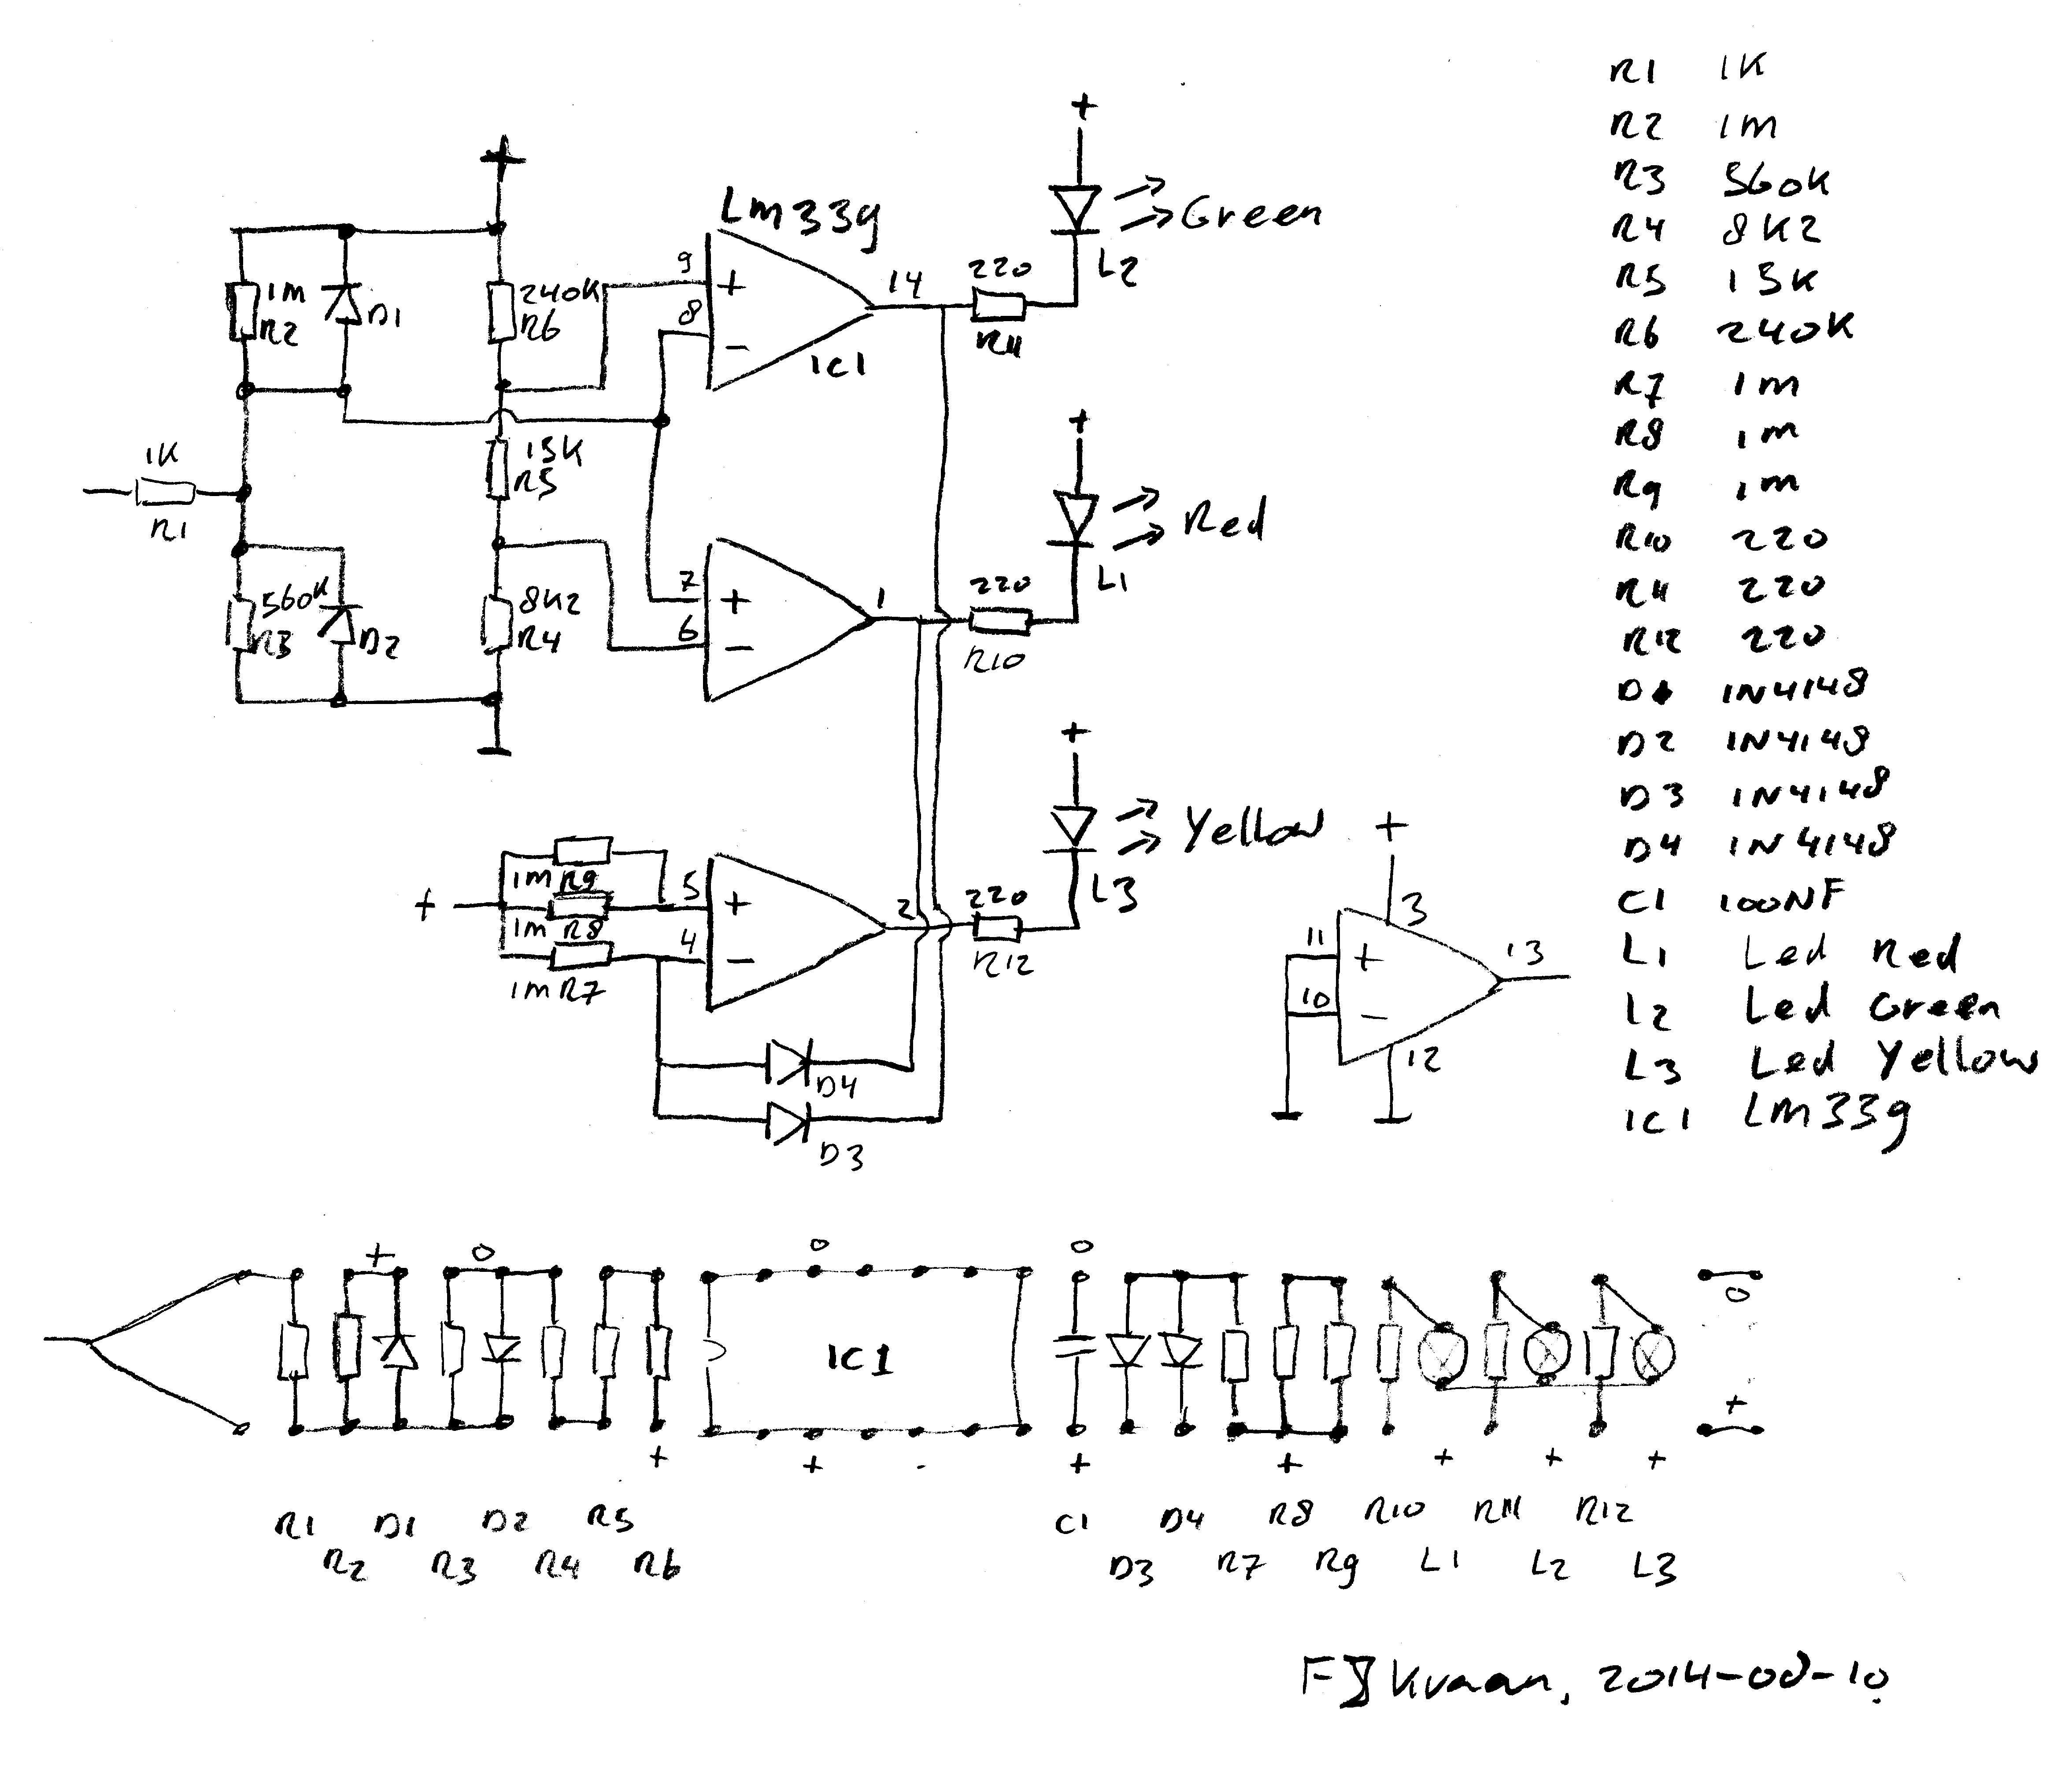 Ttl Level Probe Logic Circuit Diagram A Reverse Engineered Component List And Board Layout